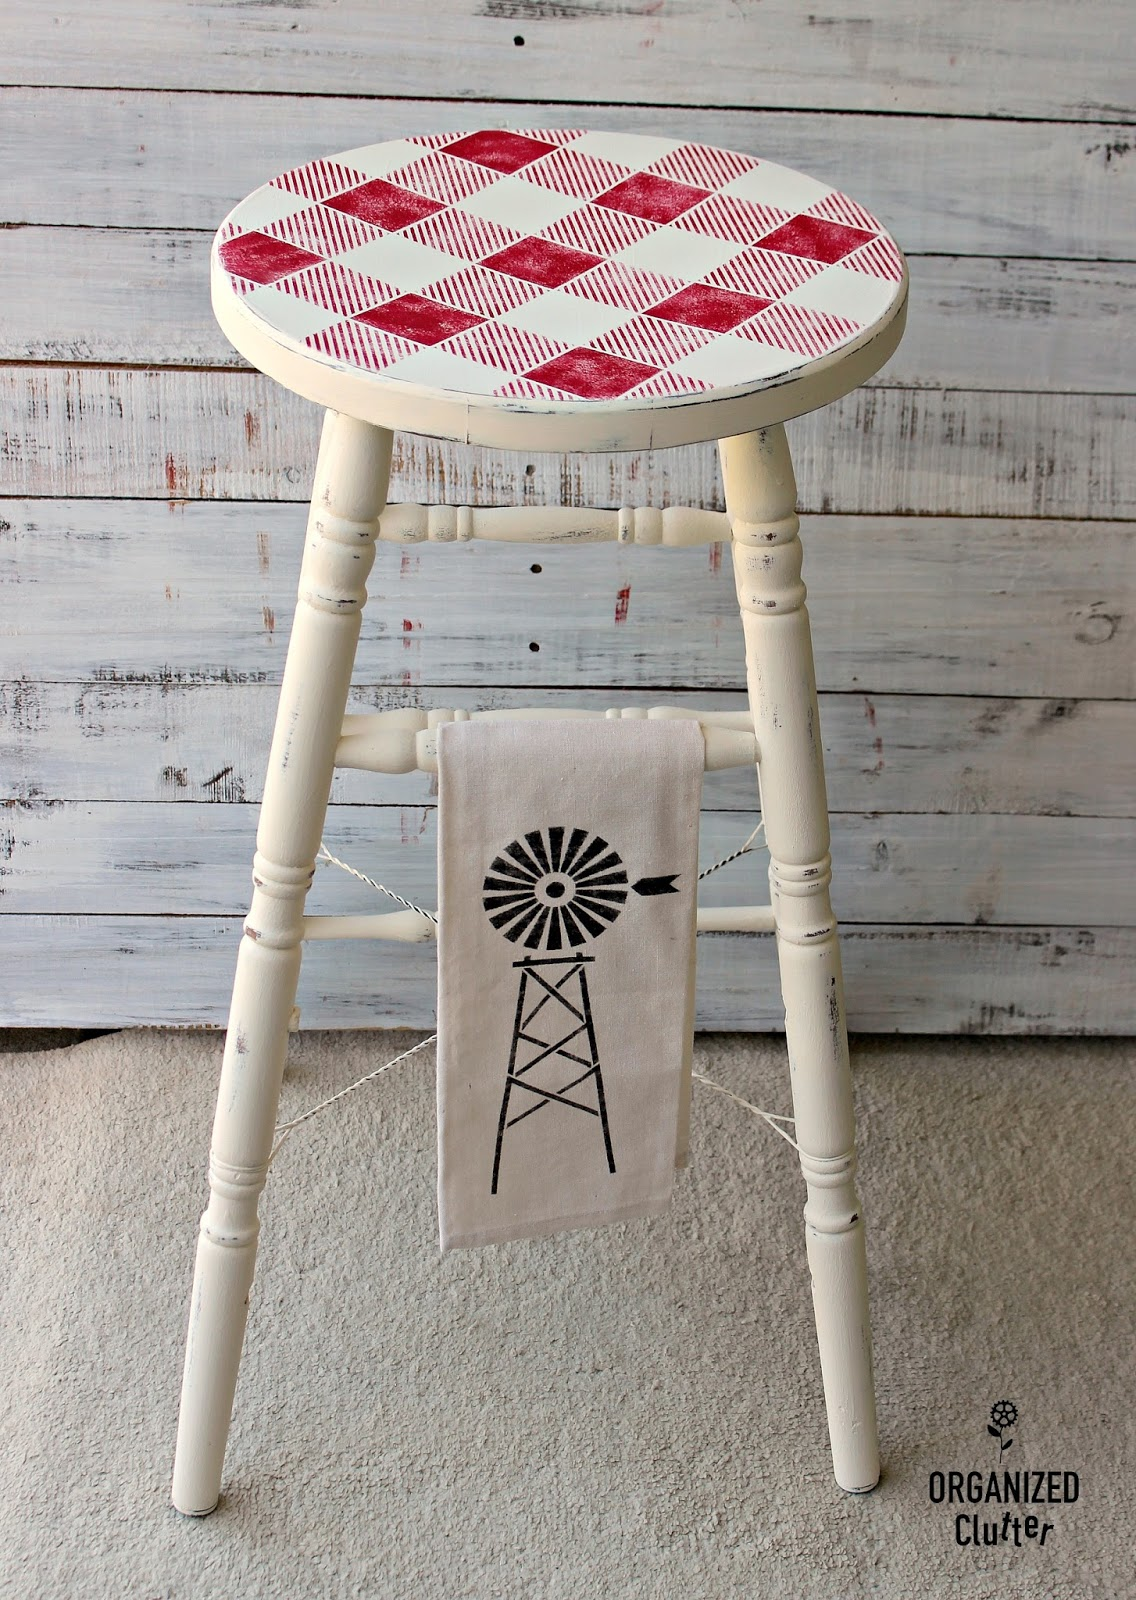 Pleasing Rummage Sale Stool Planter Upcycles With Paint Old Sign Andrewgaddart Wooden Chair Designs For Living Room Andrewgaddartcom